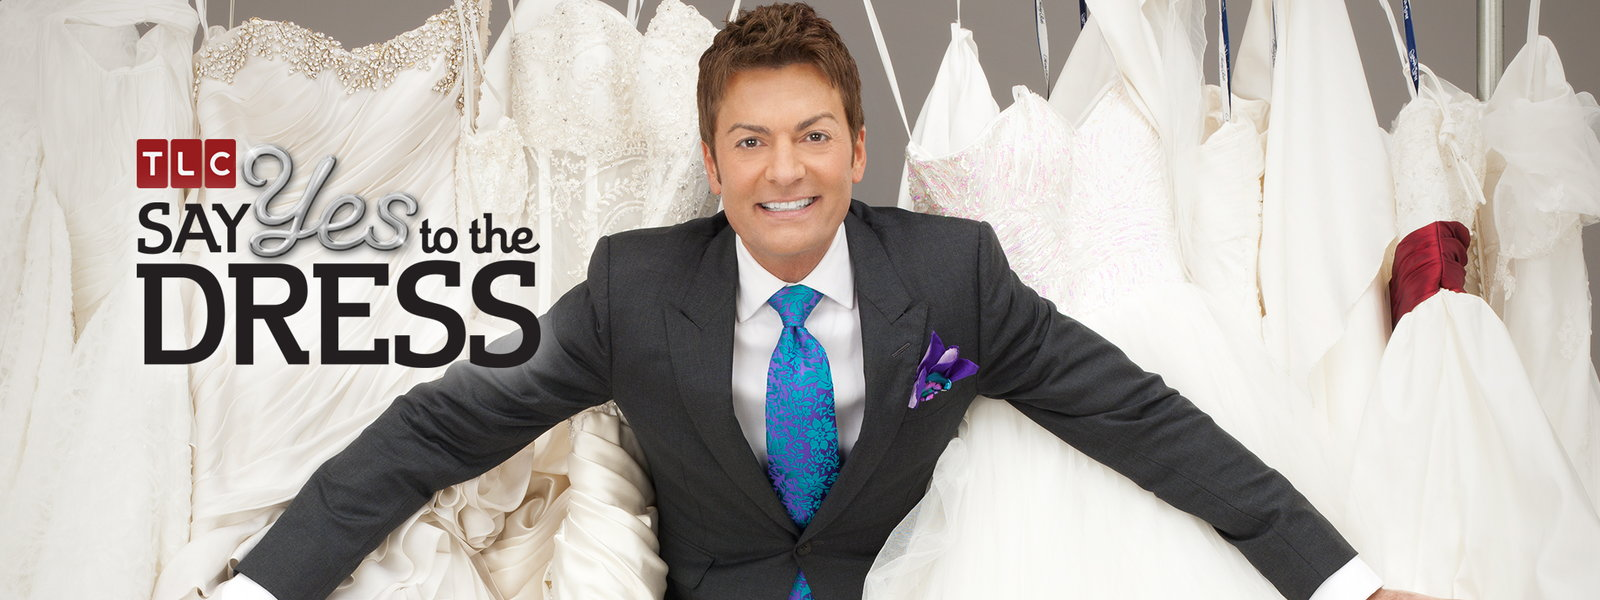 say yes to the dress song - Gowns and Dress Ideas